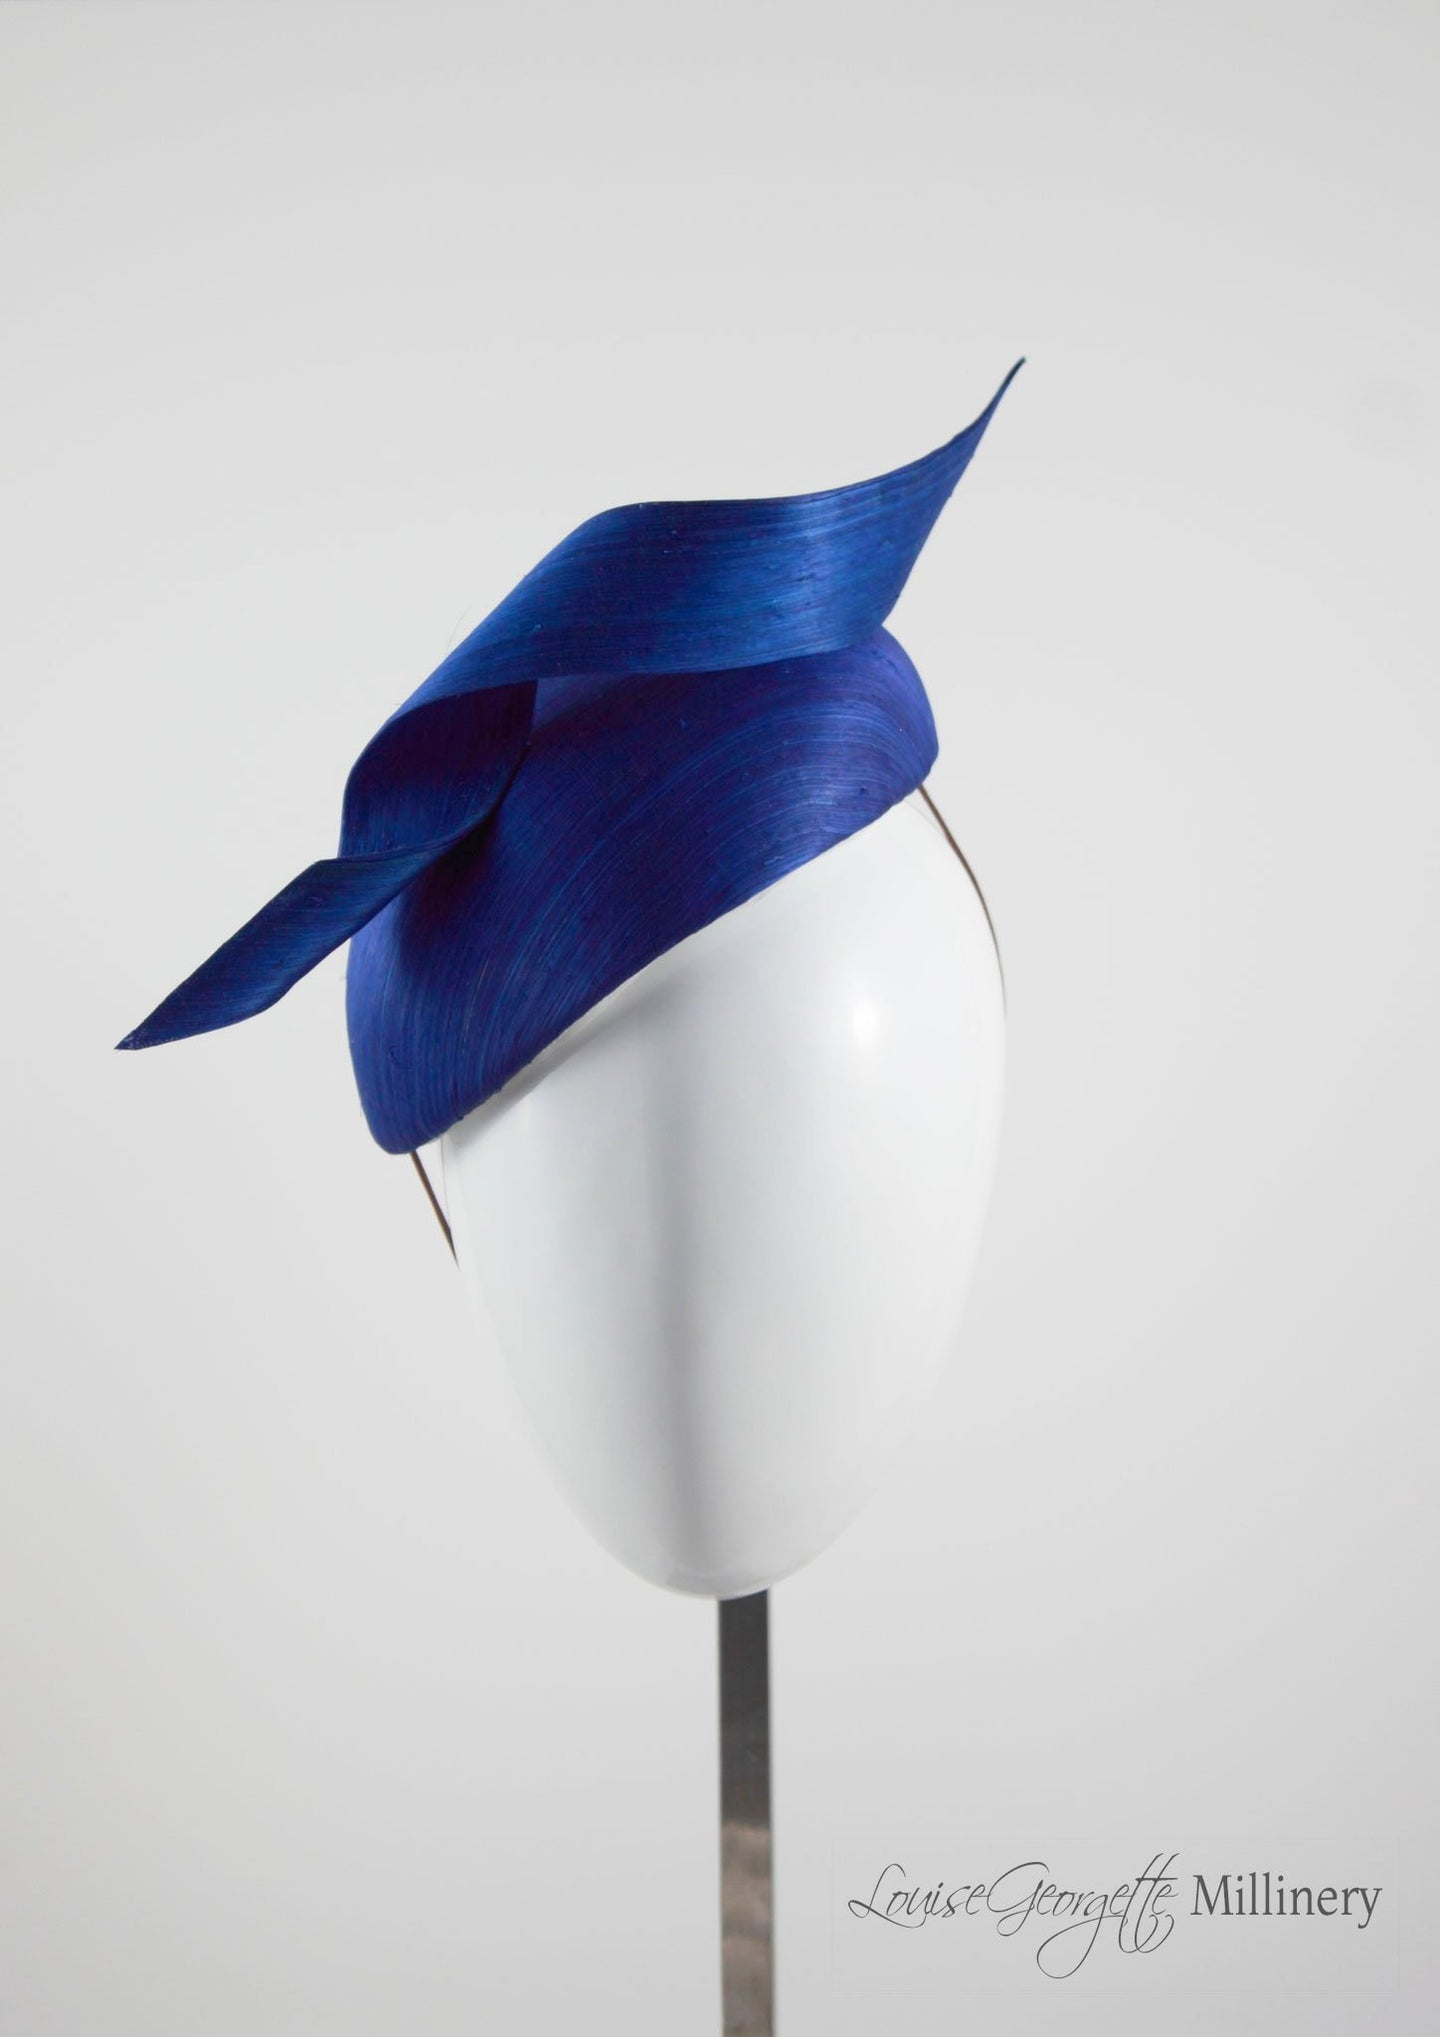 Side view, Silk Navy Beret hat with twist detail. Handmade in London, Millinery suitable for racing, weddings and other special occasions.